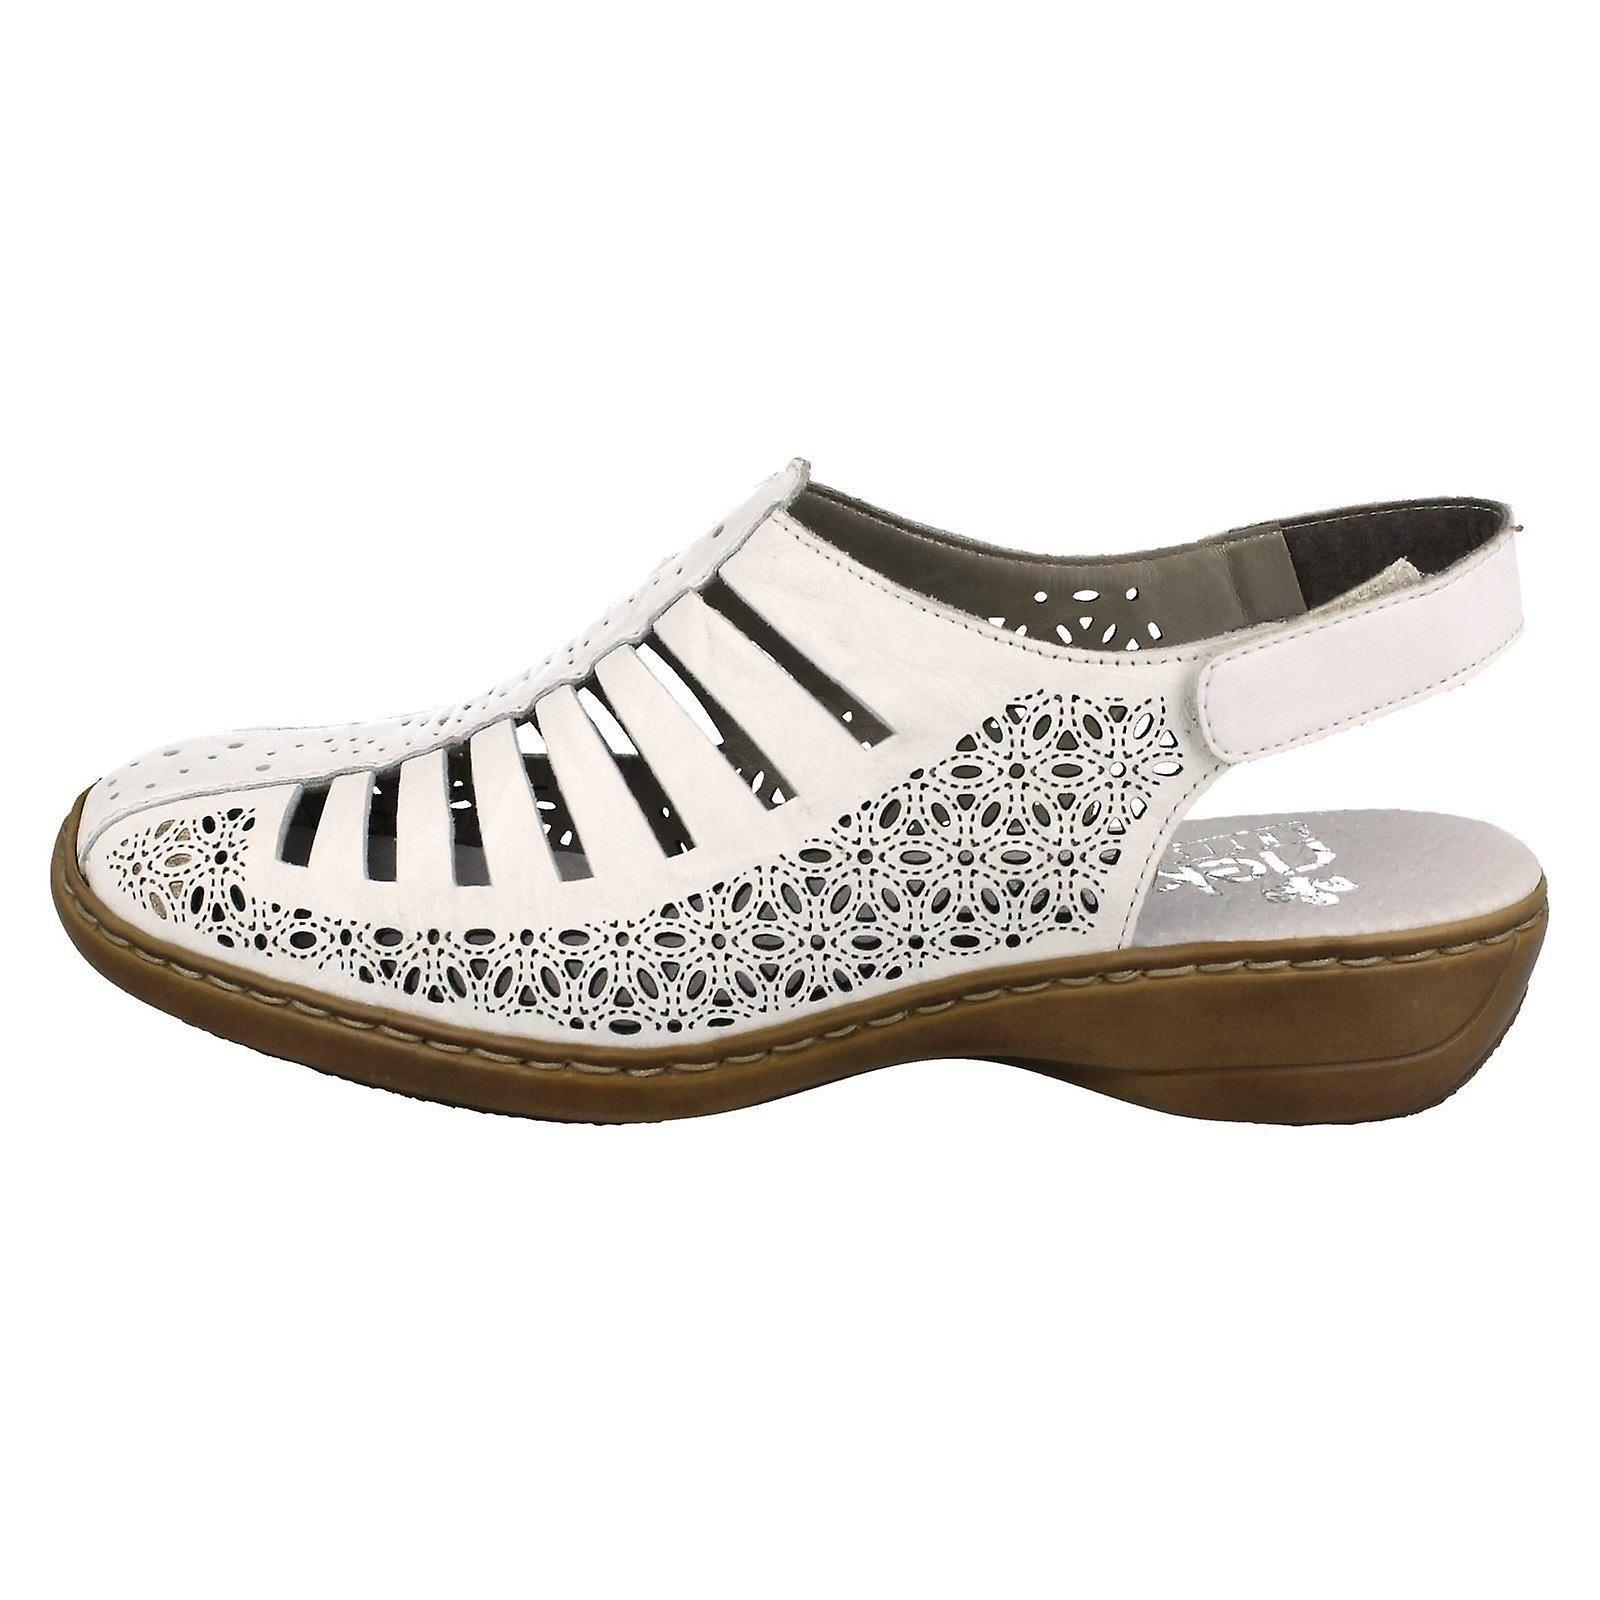 Ladies Rieker Shoes With Punched Out Detailing 41355